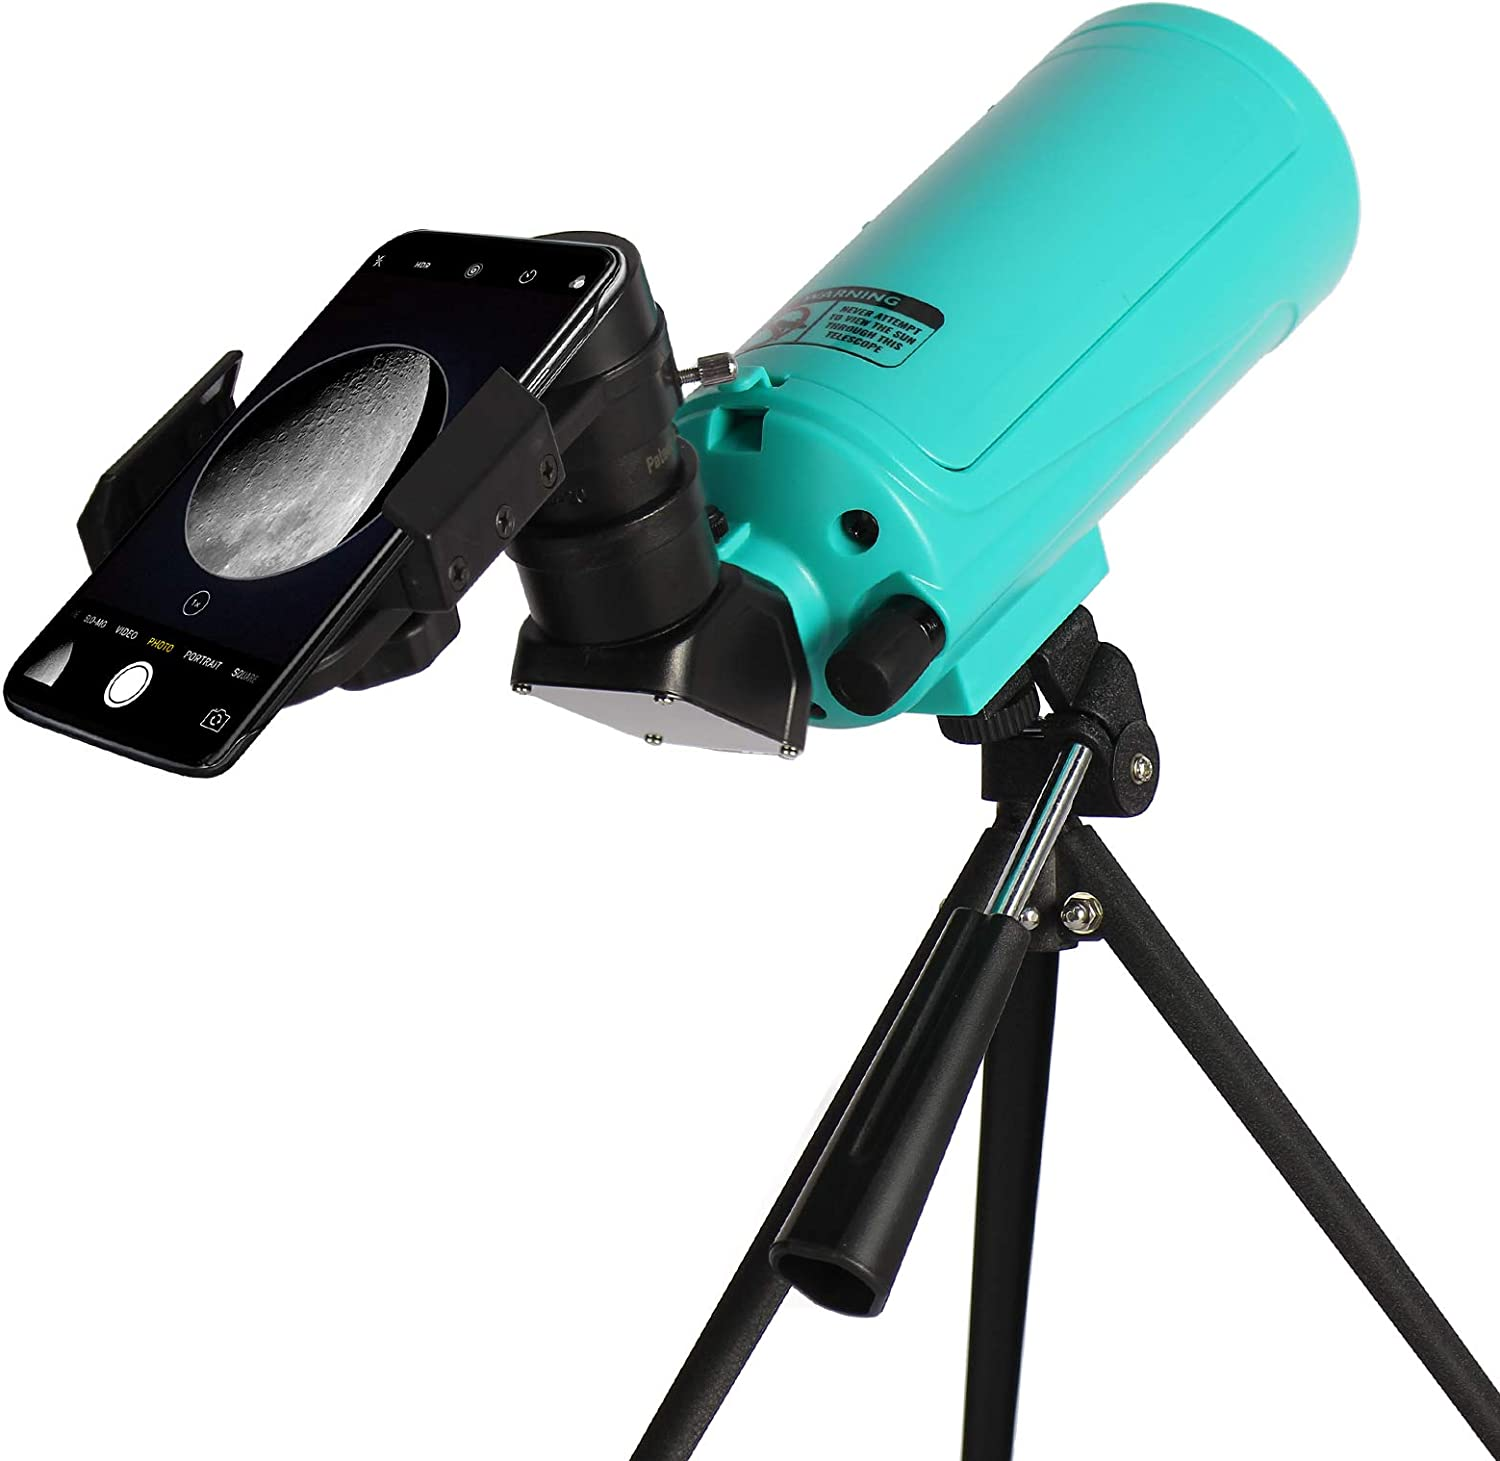 Maksutov-Cassegrain Telescope for Adults Kids Astronomy Beginners, Mak60 Reflector Telescope with Tabletop Tripod and Phone Adapter, Compact and Portable, for Viewing The Moon Planets Stars